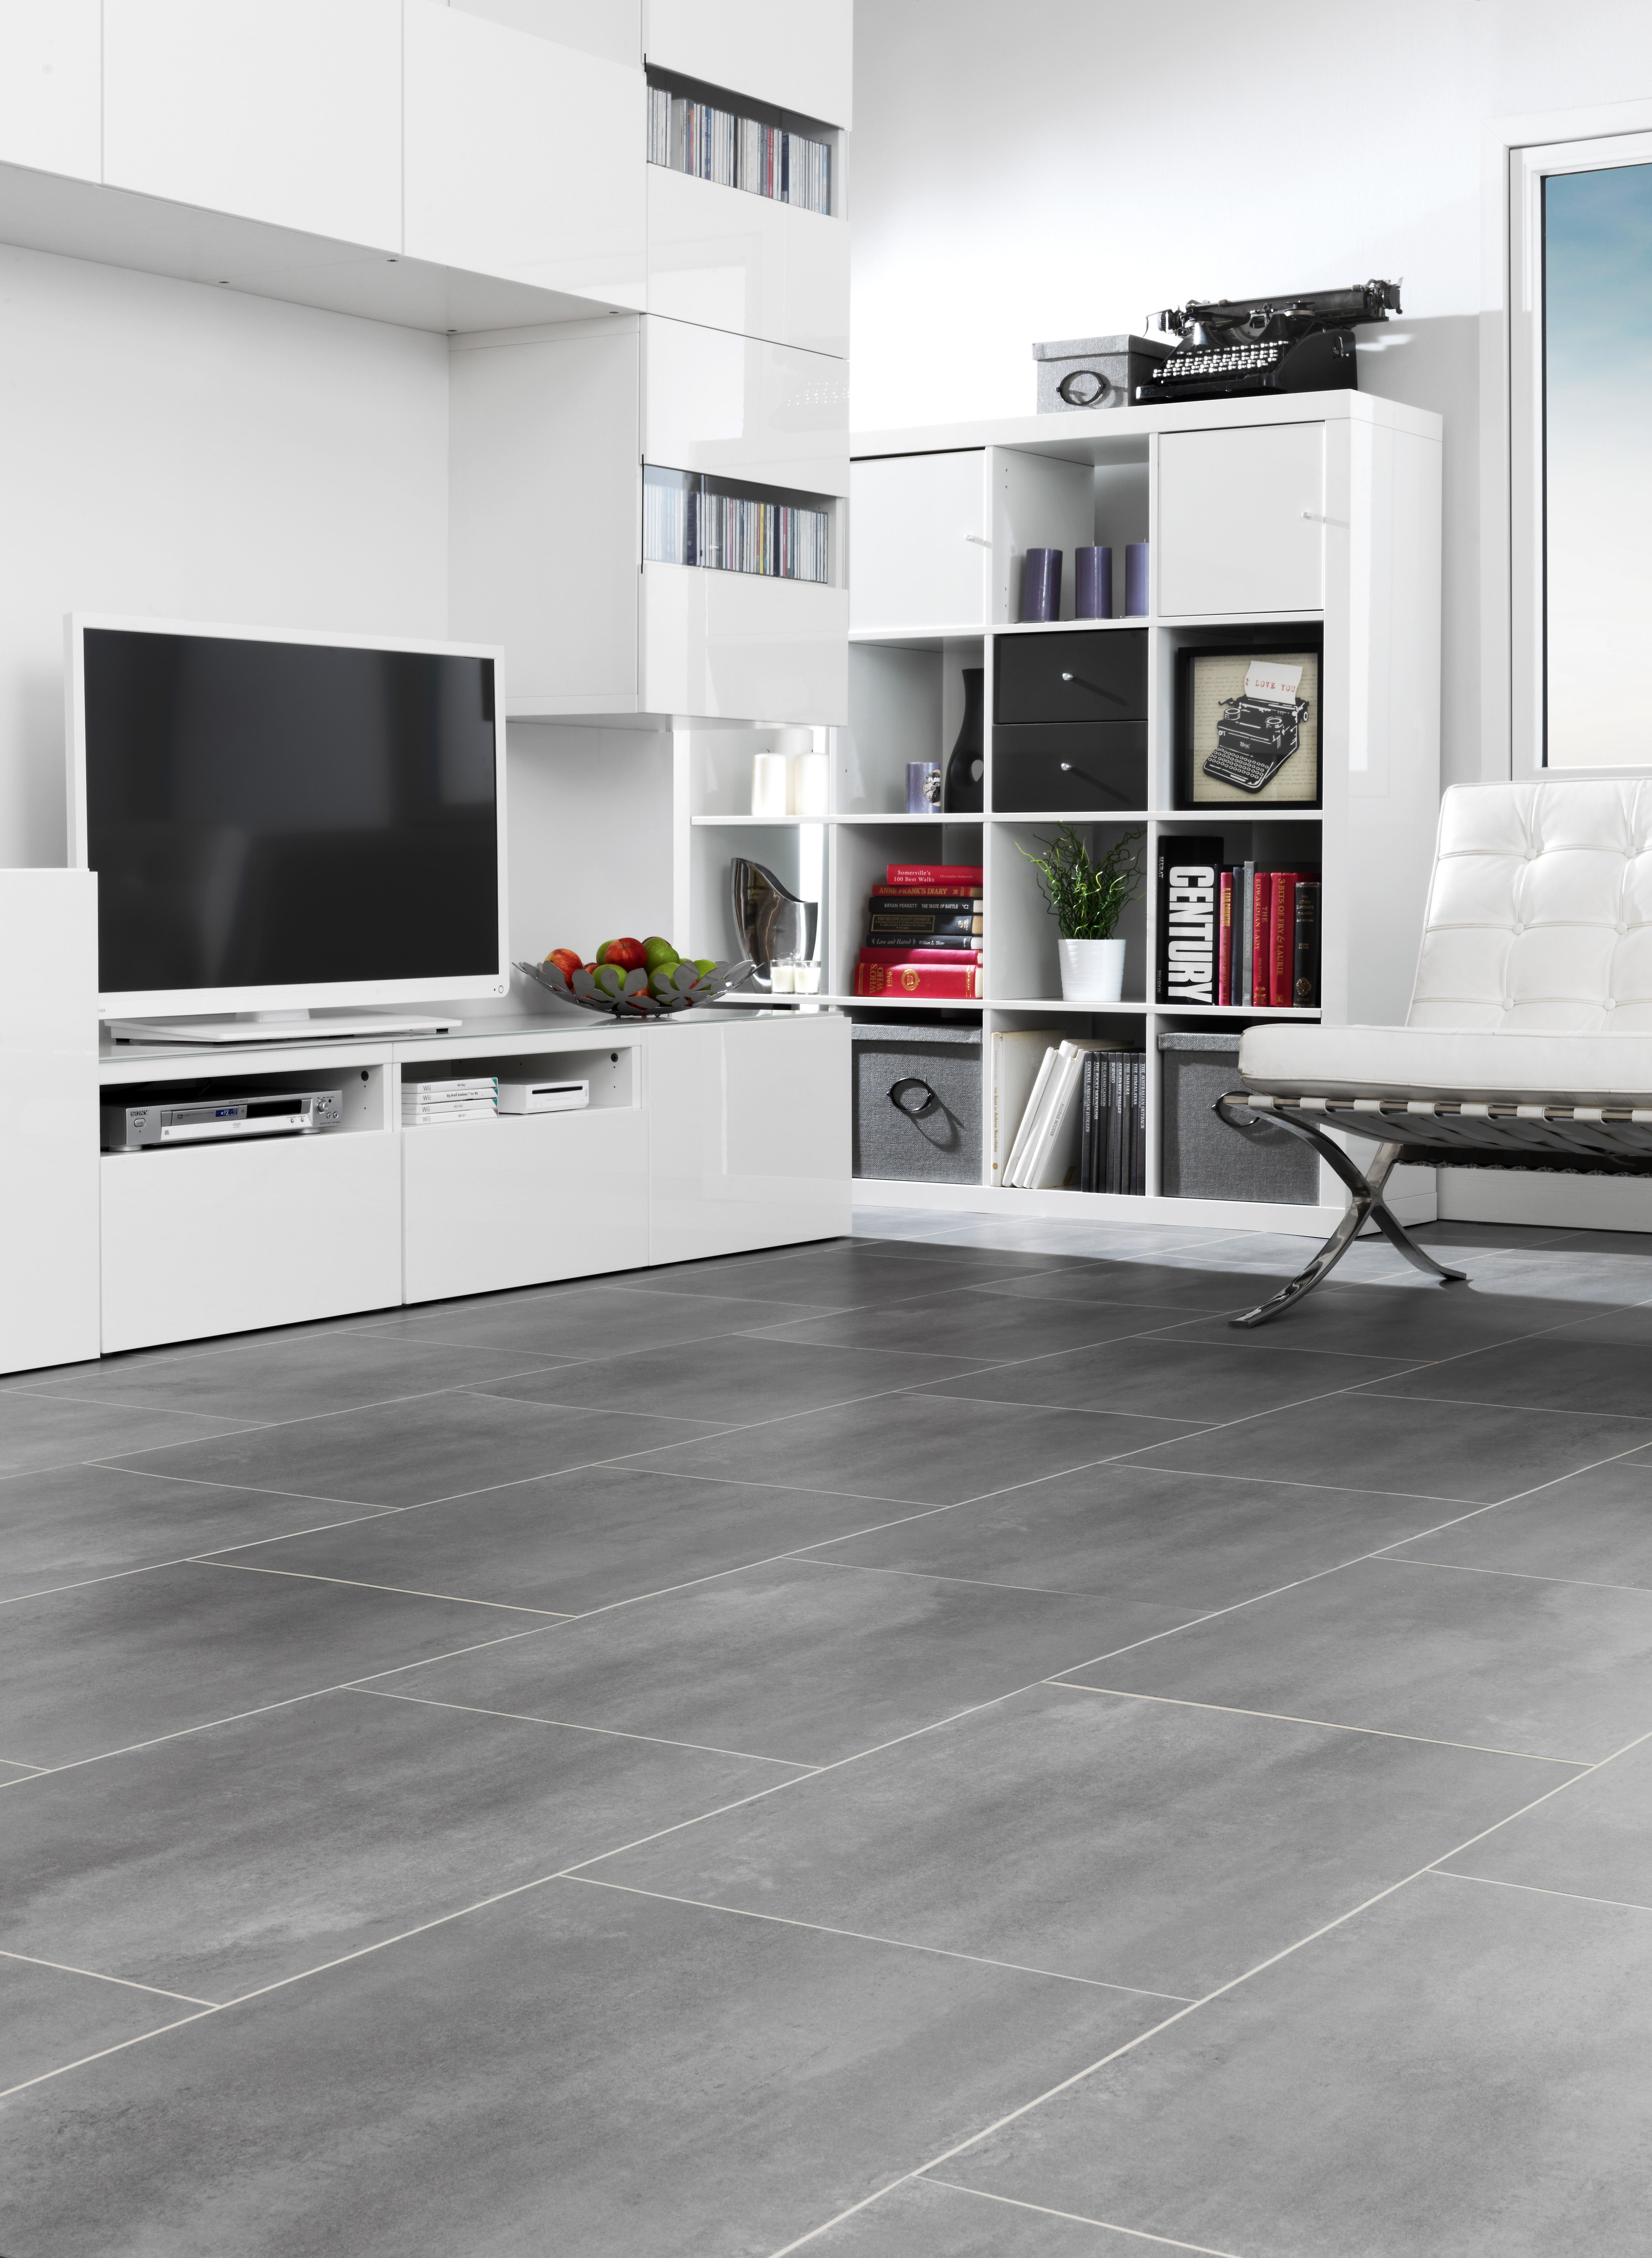 Why choose tile flooring for your home. Our products are